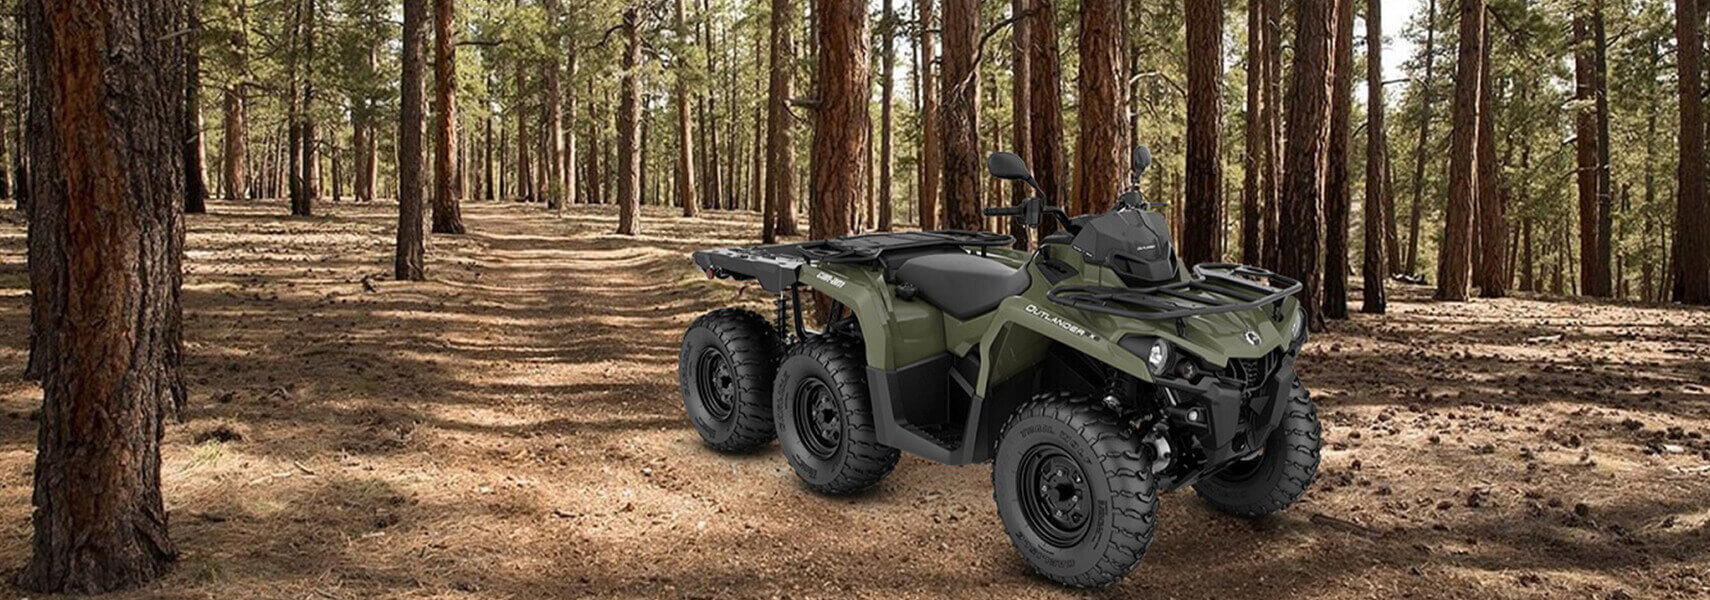 Can-Am ATV - 2020 OUTLANDER 6X6 450 T